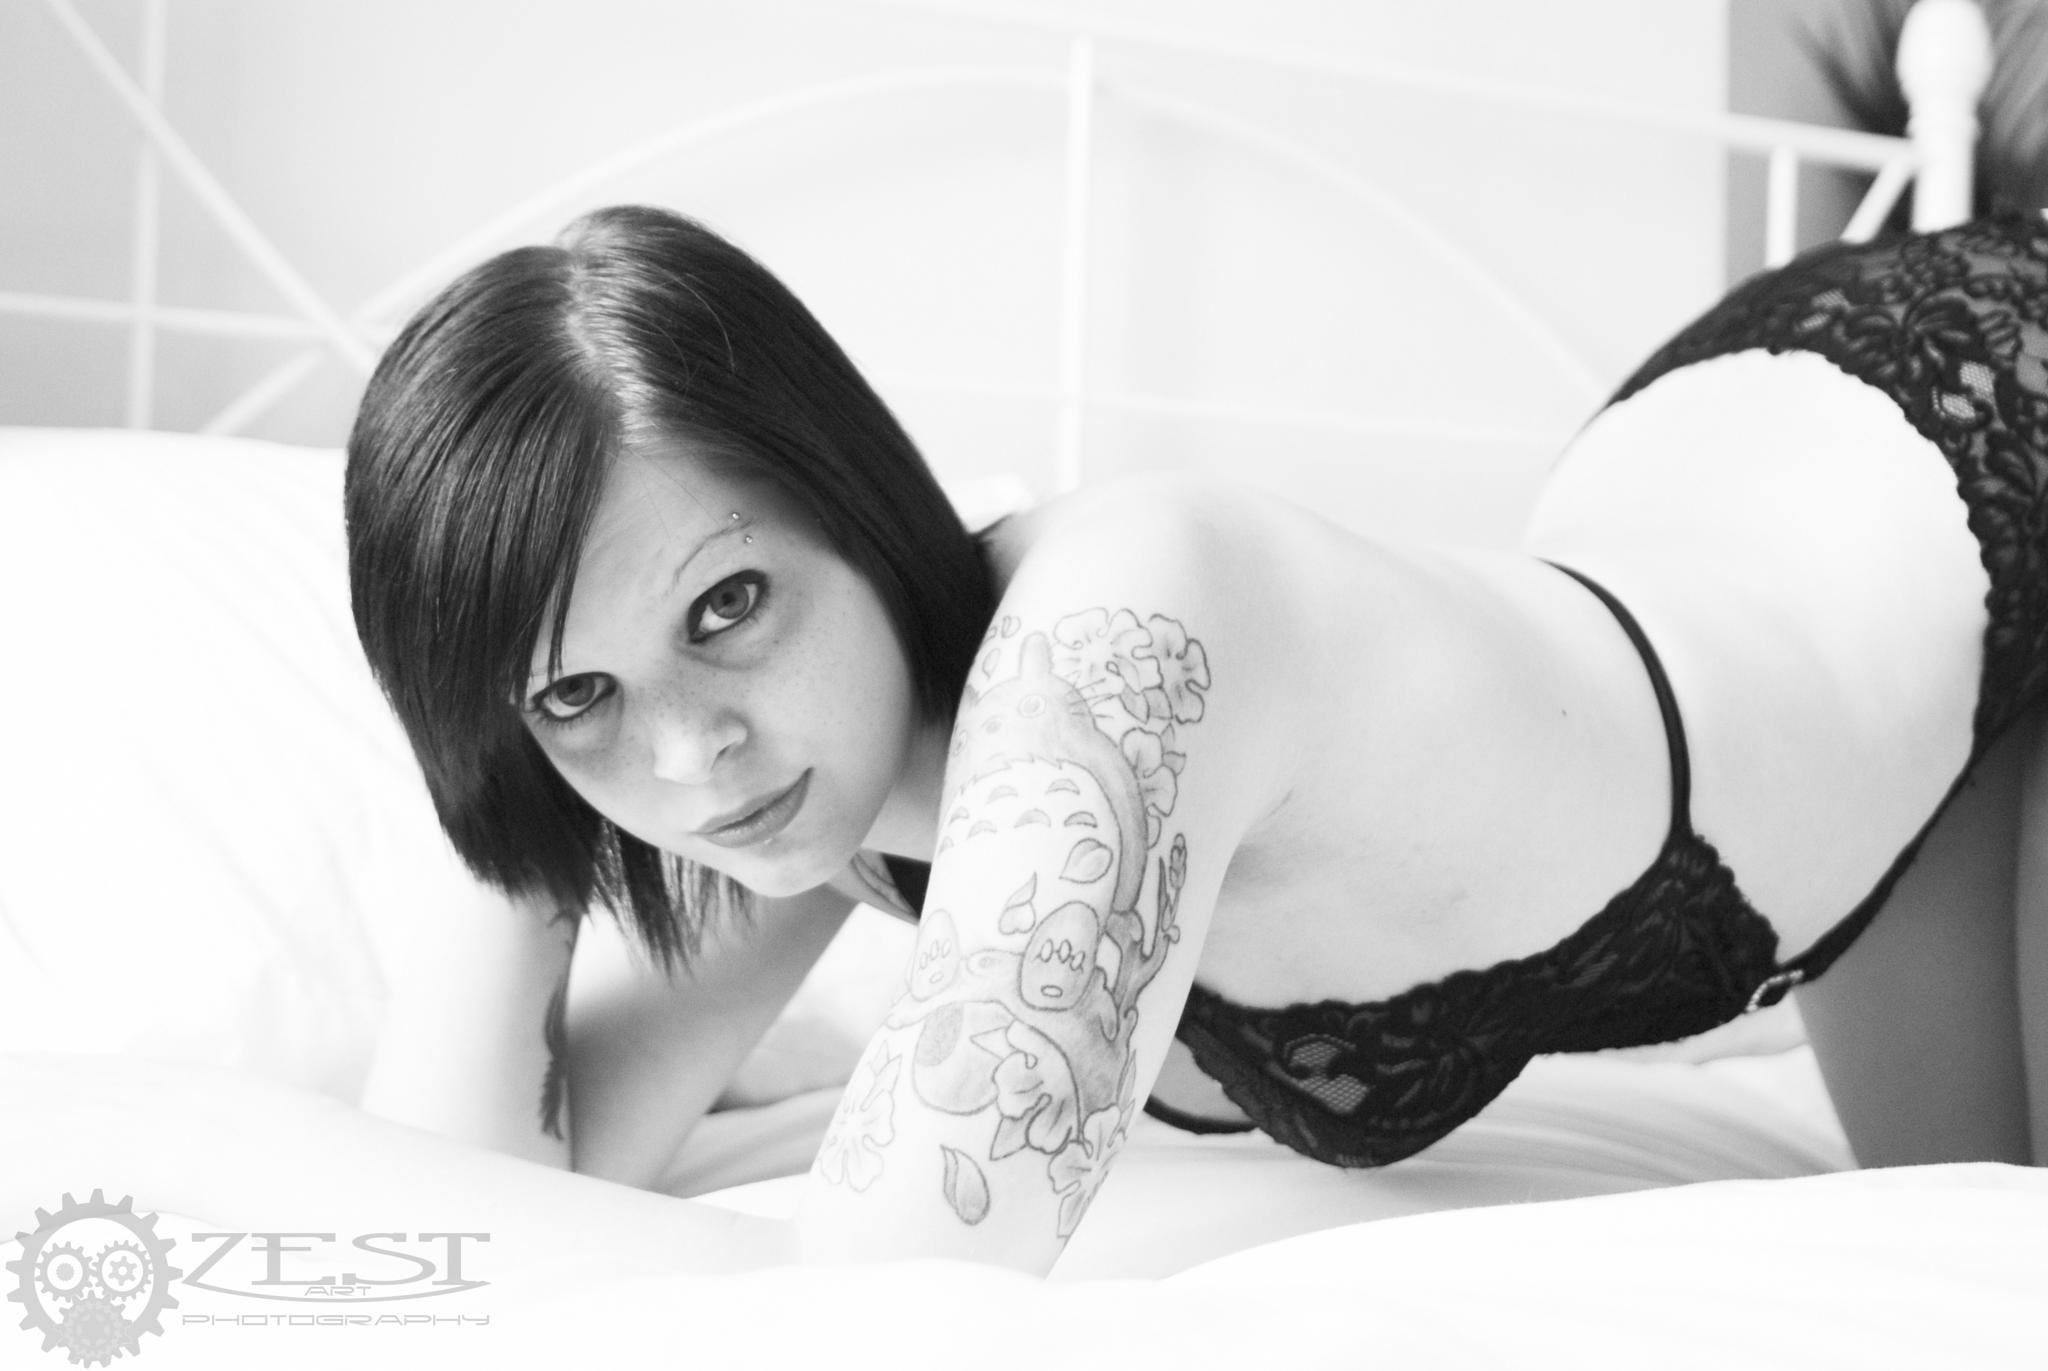 lorii suicide lace #1 by Zoey Smith